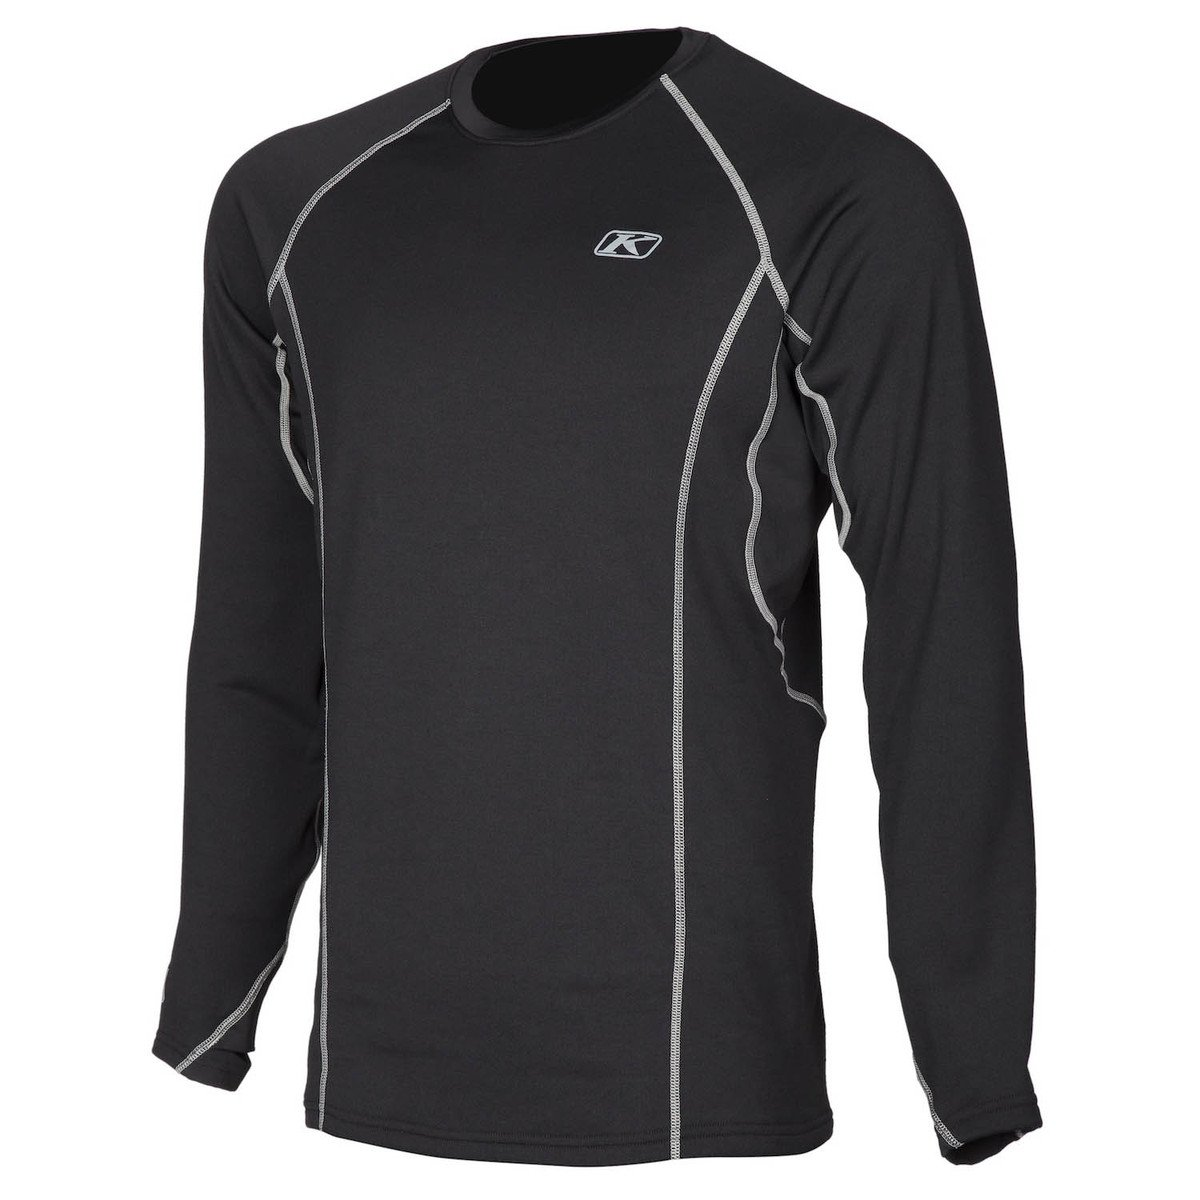 klim Aggressor Shirt 2.0 - Black/Medium